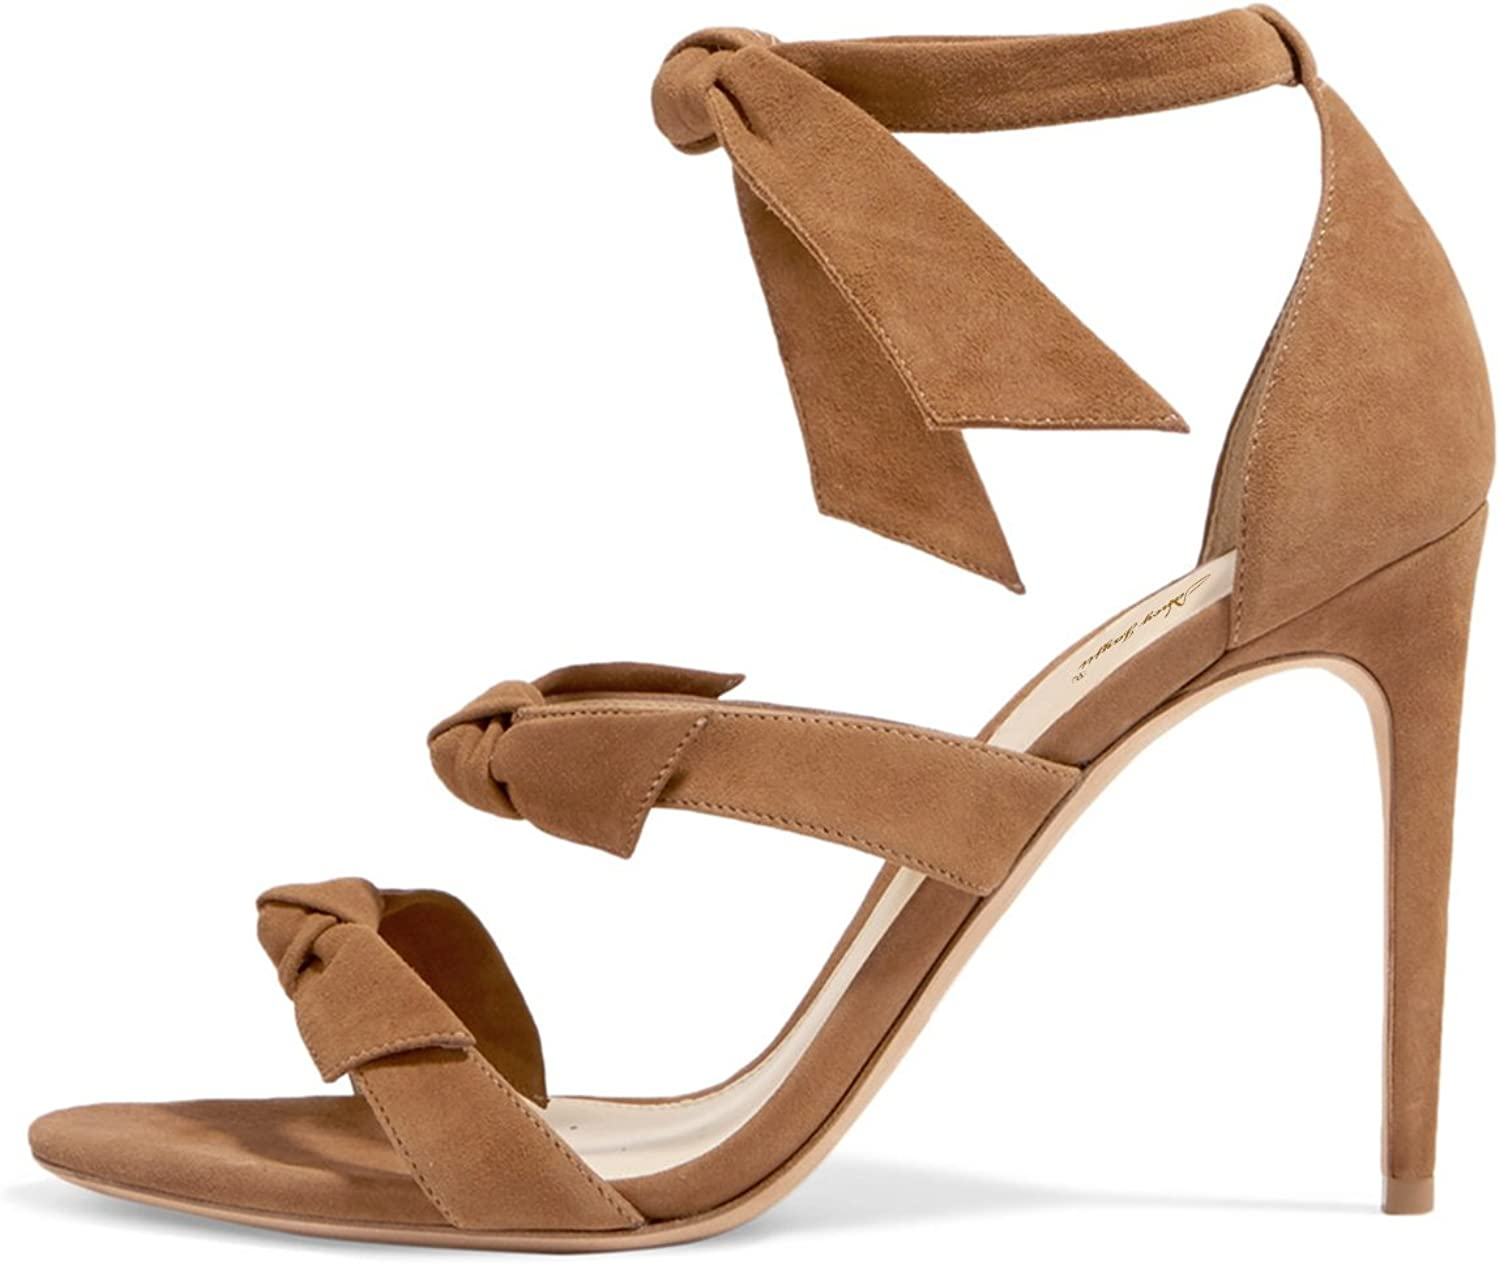 NJ Women Open Toe High Heel Strappy Sandals Ankle Straps Stiletto Bow Tie shoes for Party